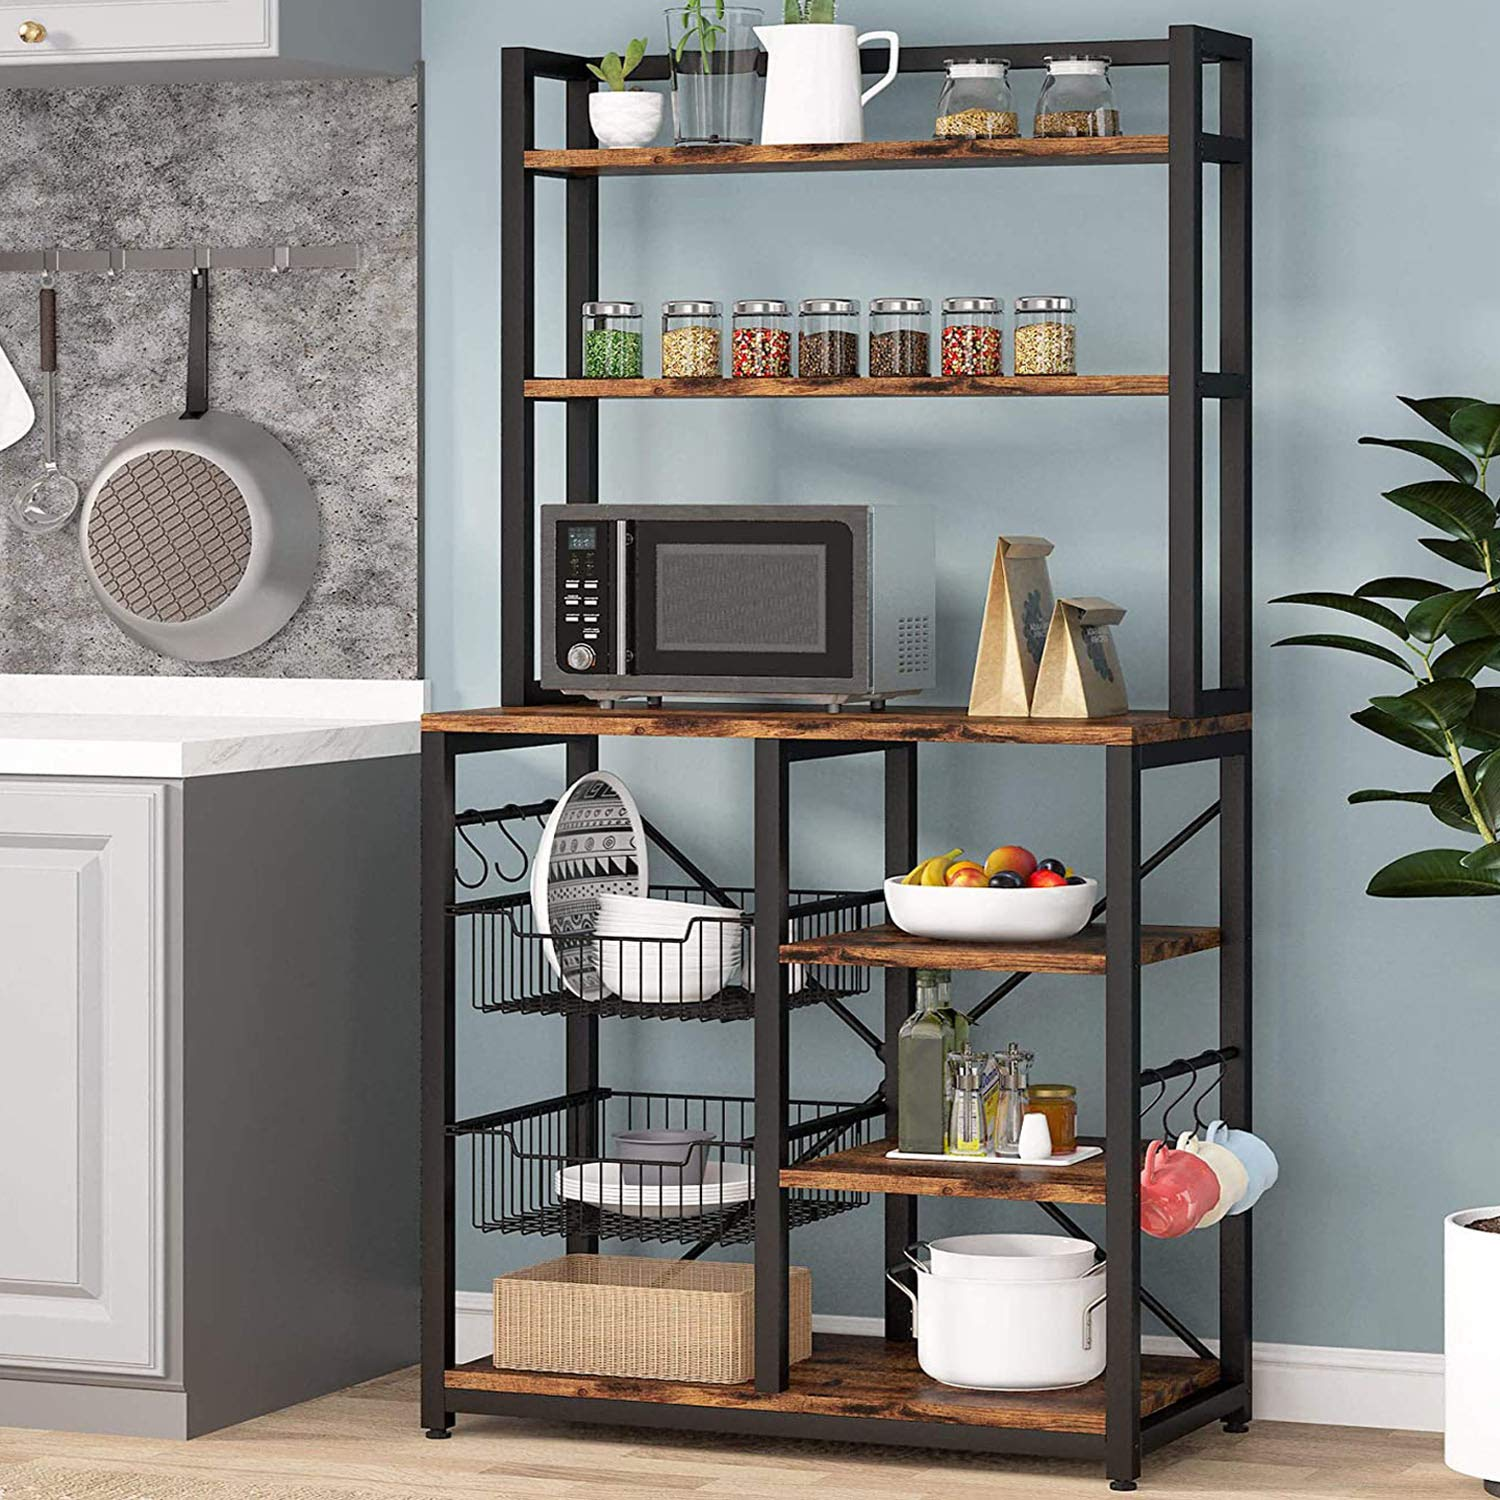 Tribesigns 6-Tier Kitchen Baker's Rack with 6 Hooks and Hutch, Free Standing Microwave Oven Stand with 2 Wire Baskets, Uti...